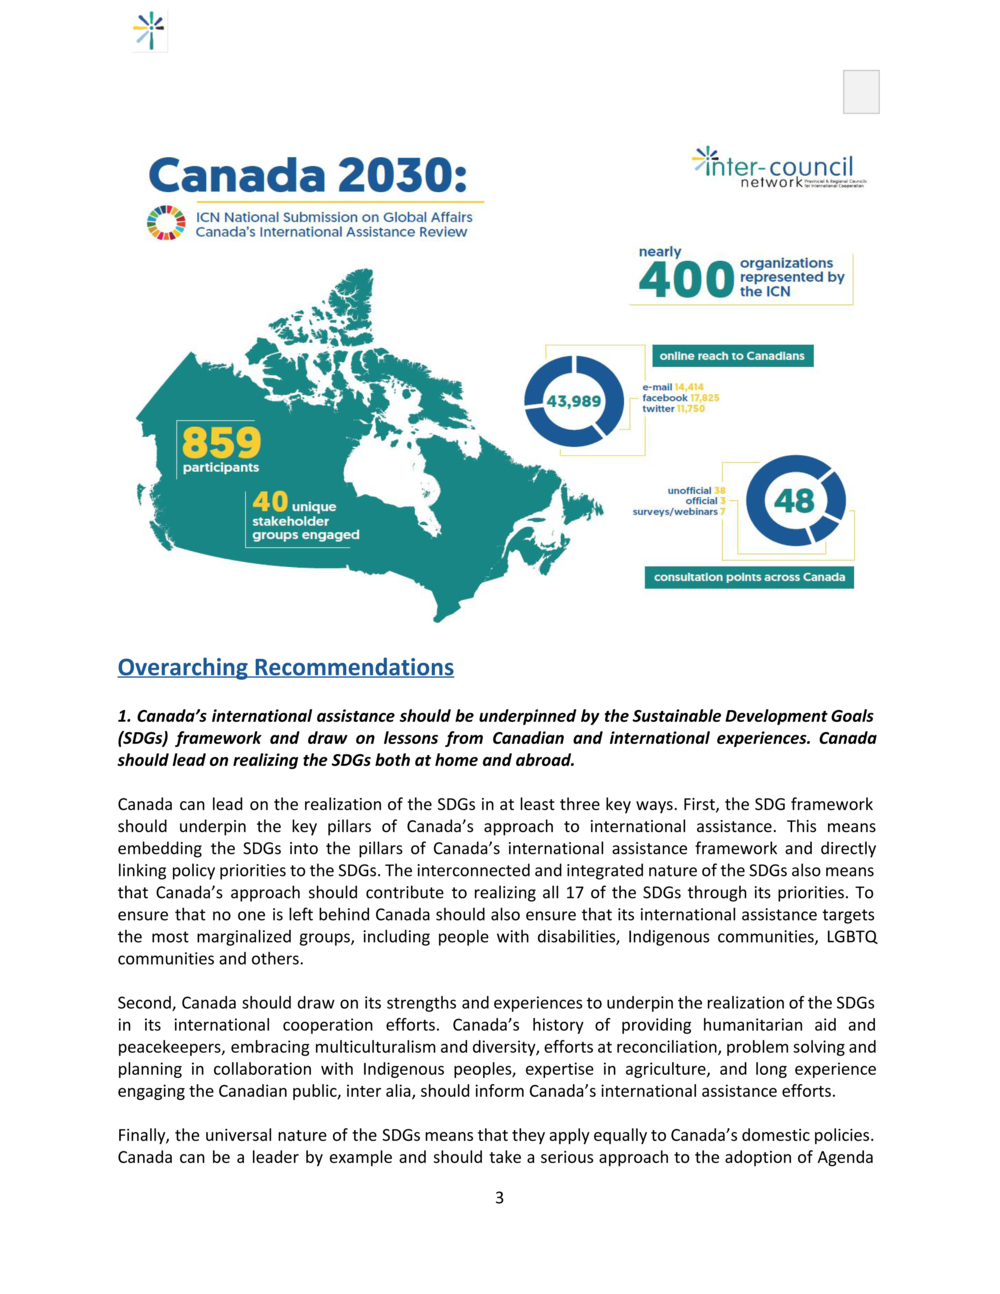 Canada 2030: ICN National Submission on Global Affairs Canada's International Assistance Review (IAR)